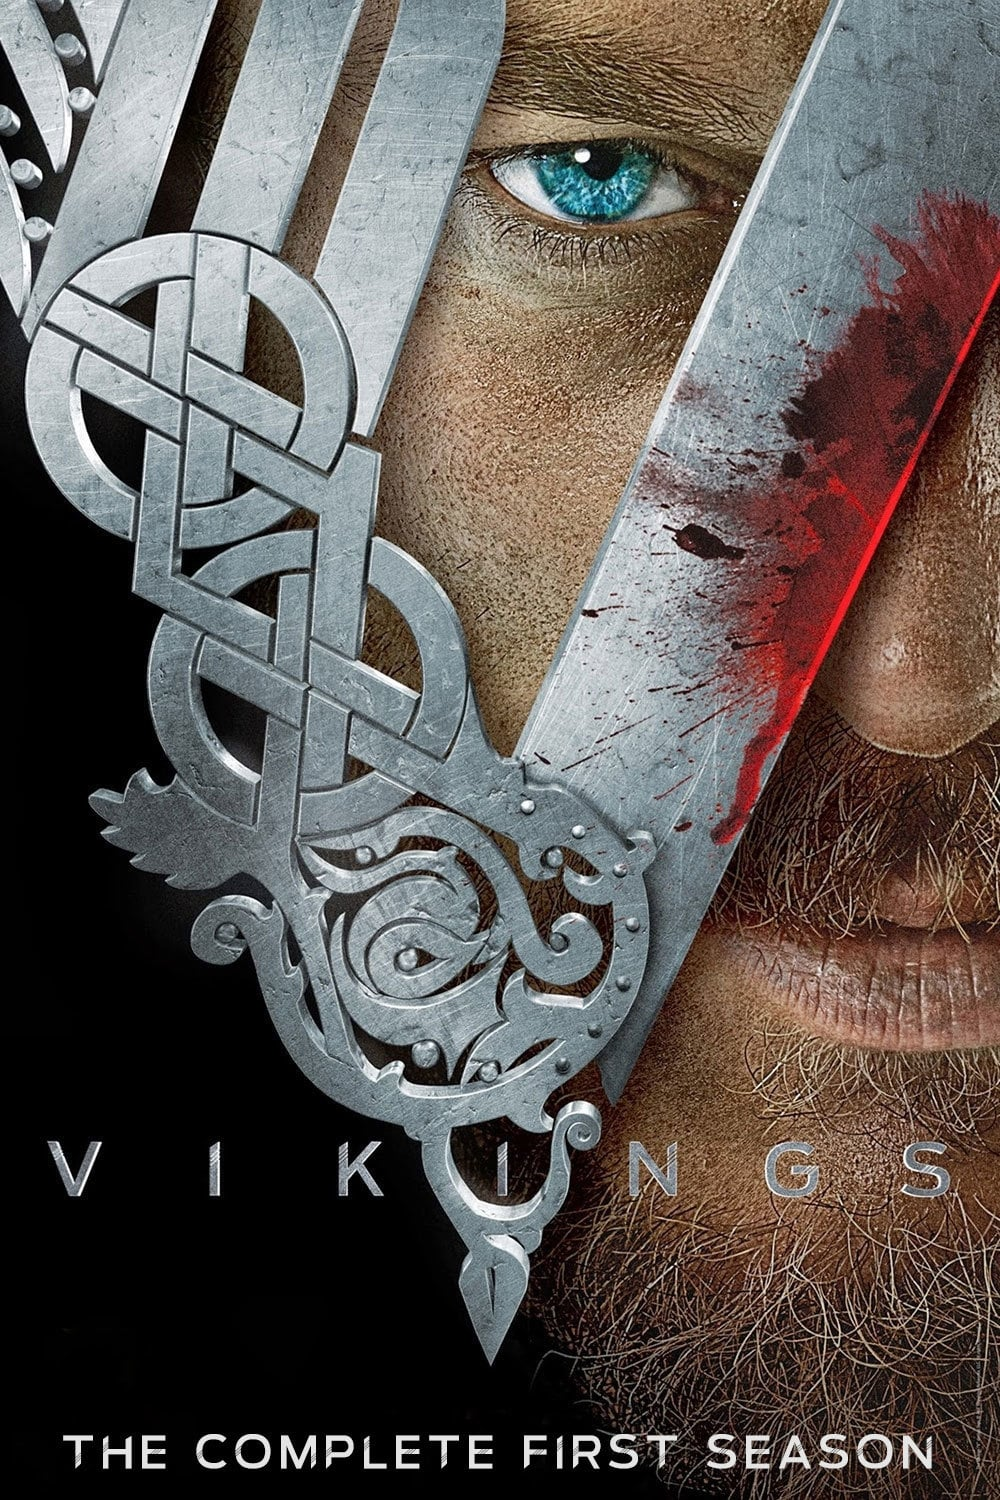 http://gzhqhyregc.com/vikings-1a-temporada-2013-bdrip-bluray-720p-dublado-torrent/